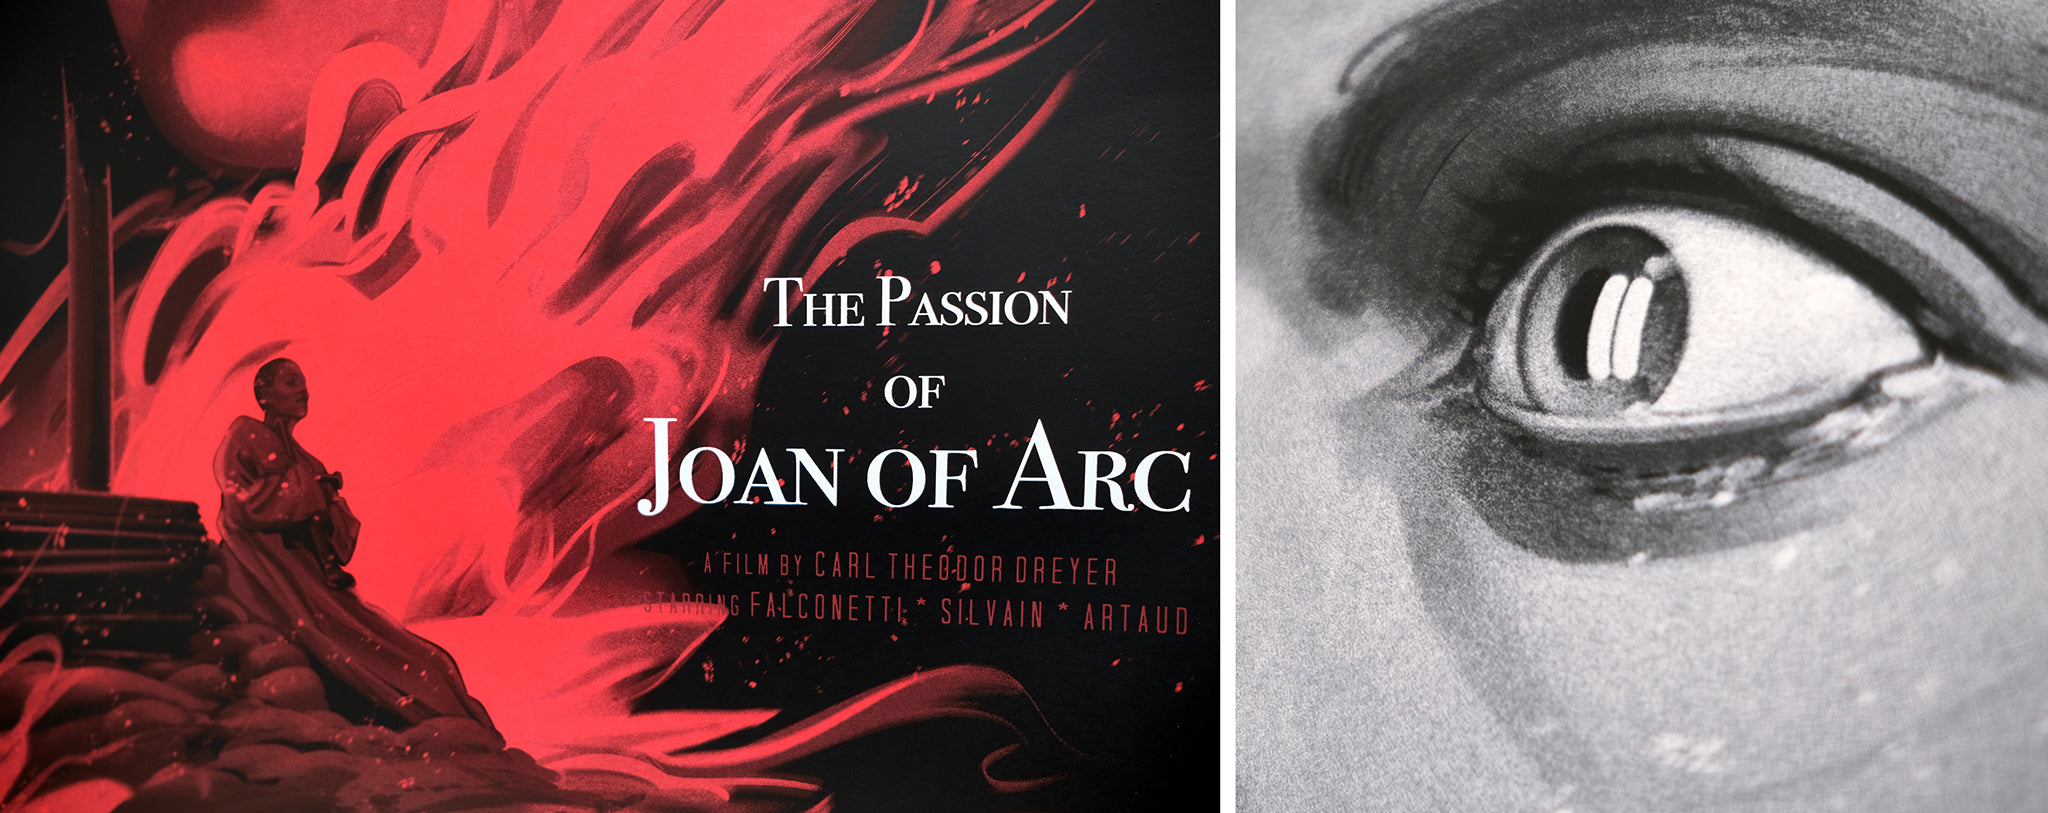 The Passion of Joan of Arc is a new screen print edition by Zi Xu, commissioned by Black Dragon Press & Mondo. Screen Printed by White Duck Editions.